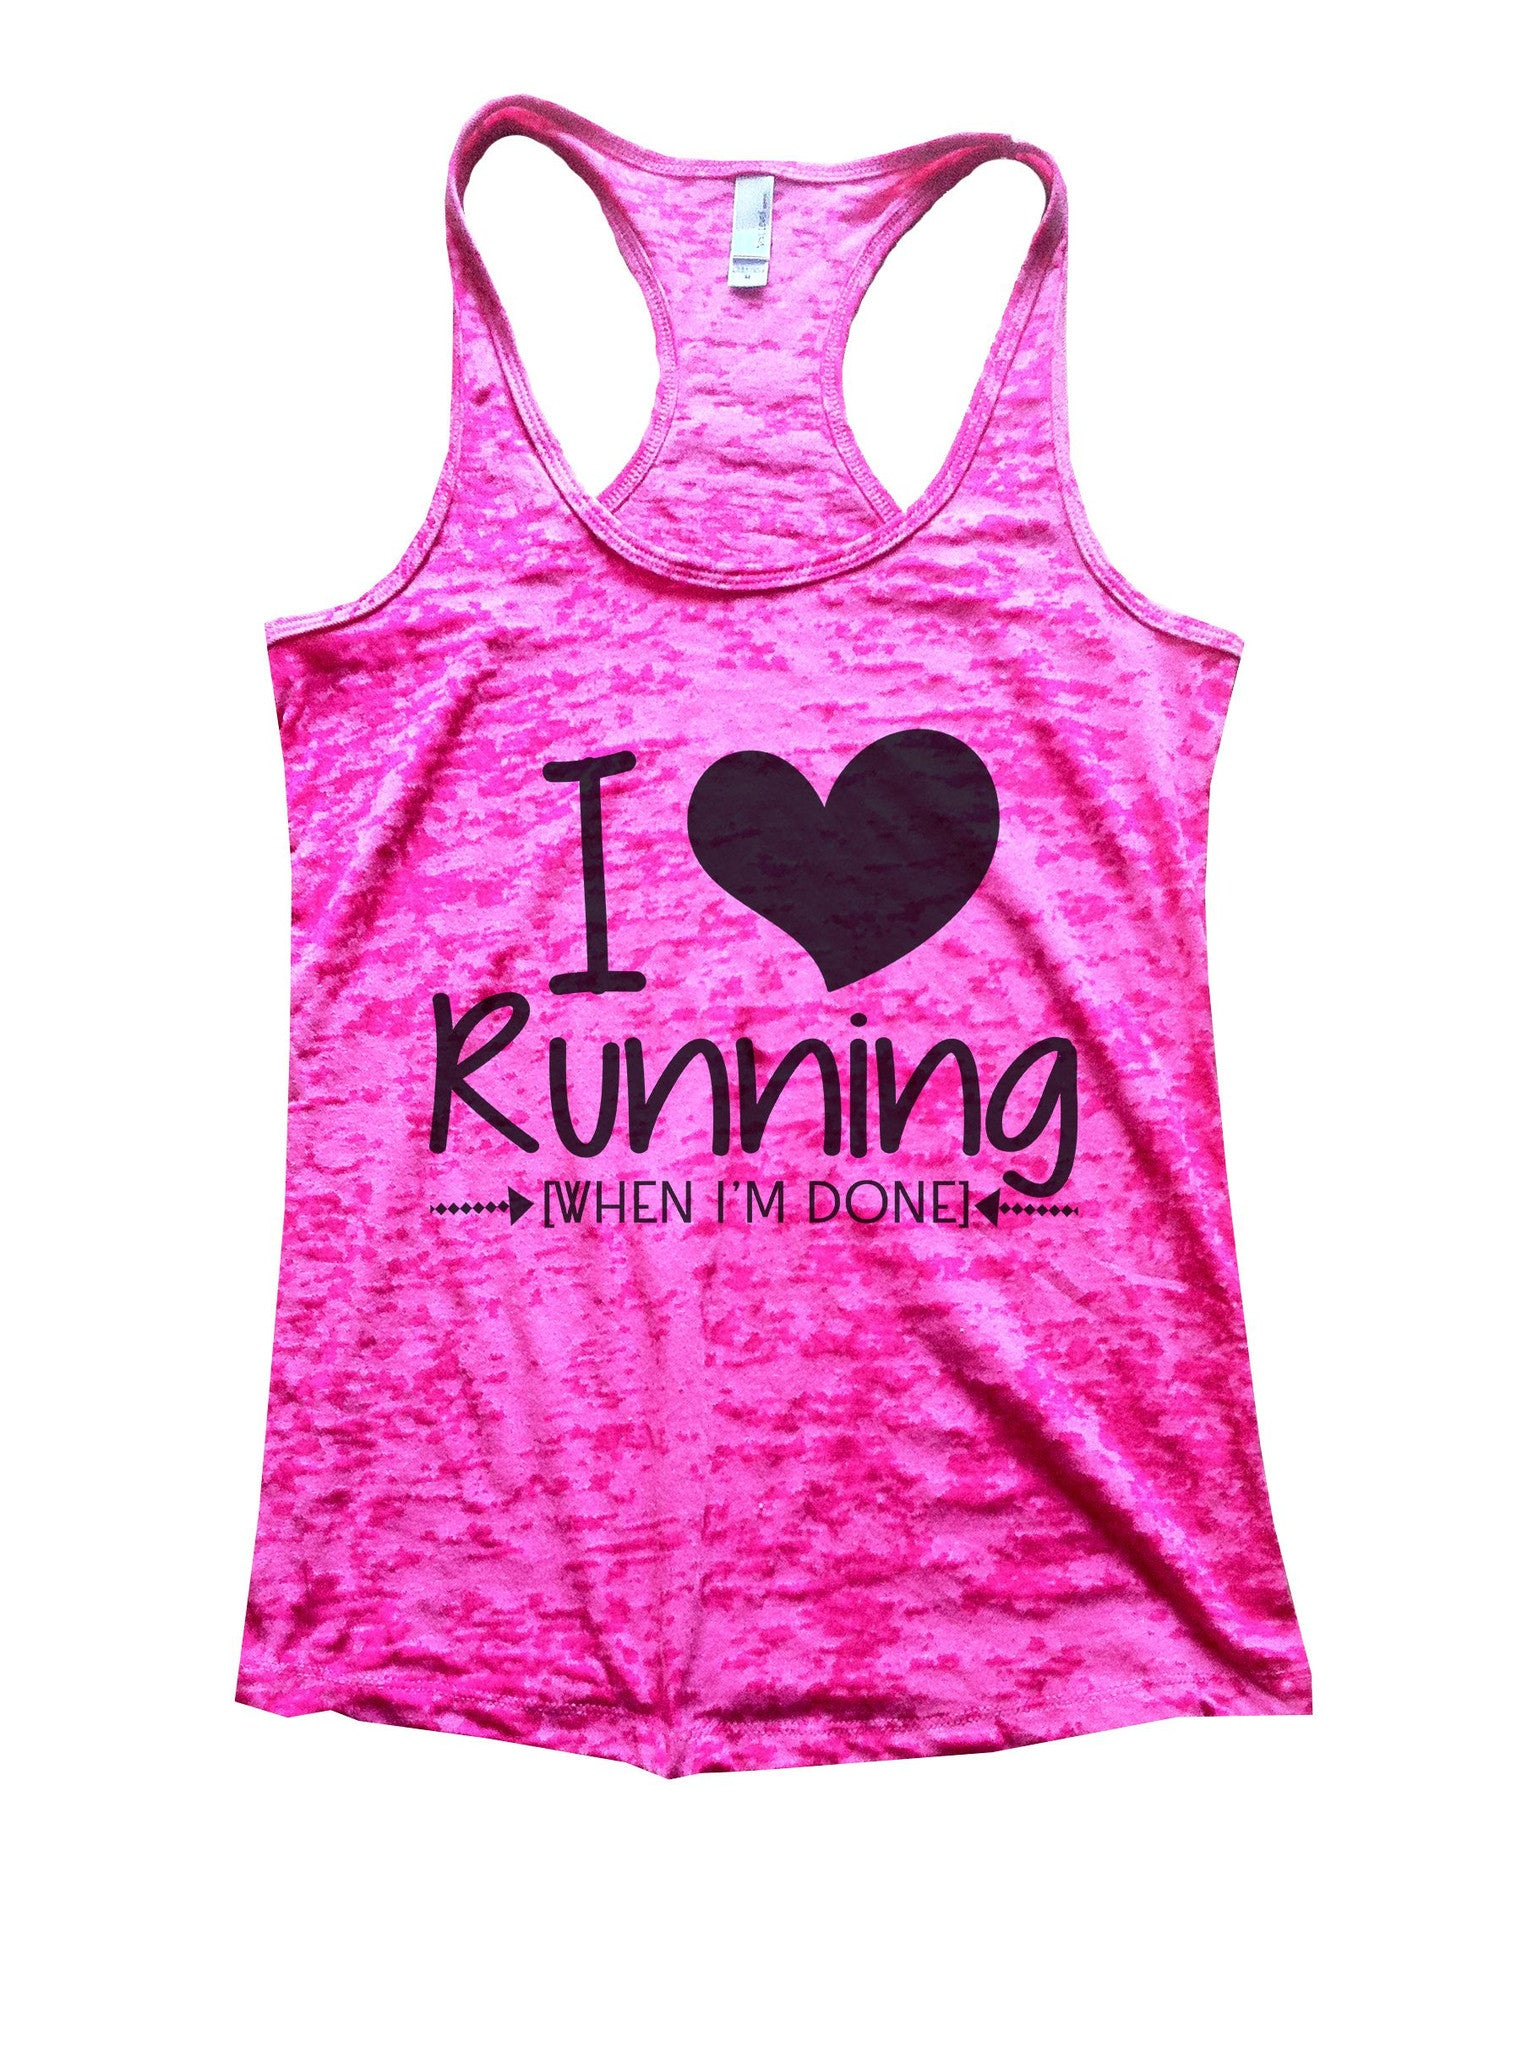 I Love Running [When I'm Done] Burnout Tank Top By BurnoutTankTops.com - 1013 - Funny Shirts Tank Tops Burnouts and Triblends  - 5